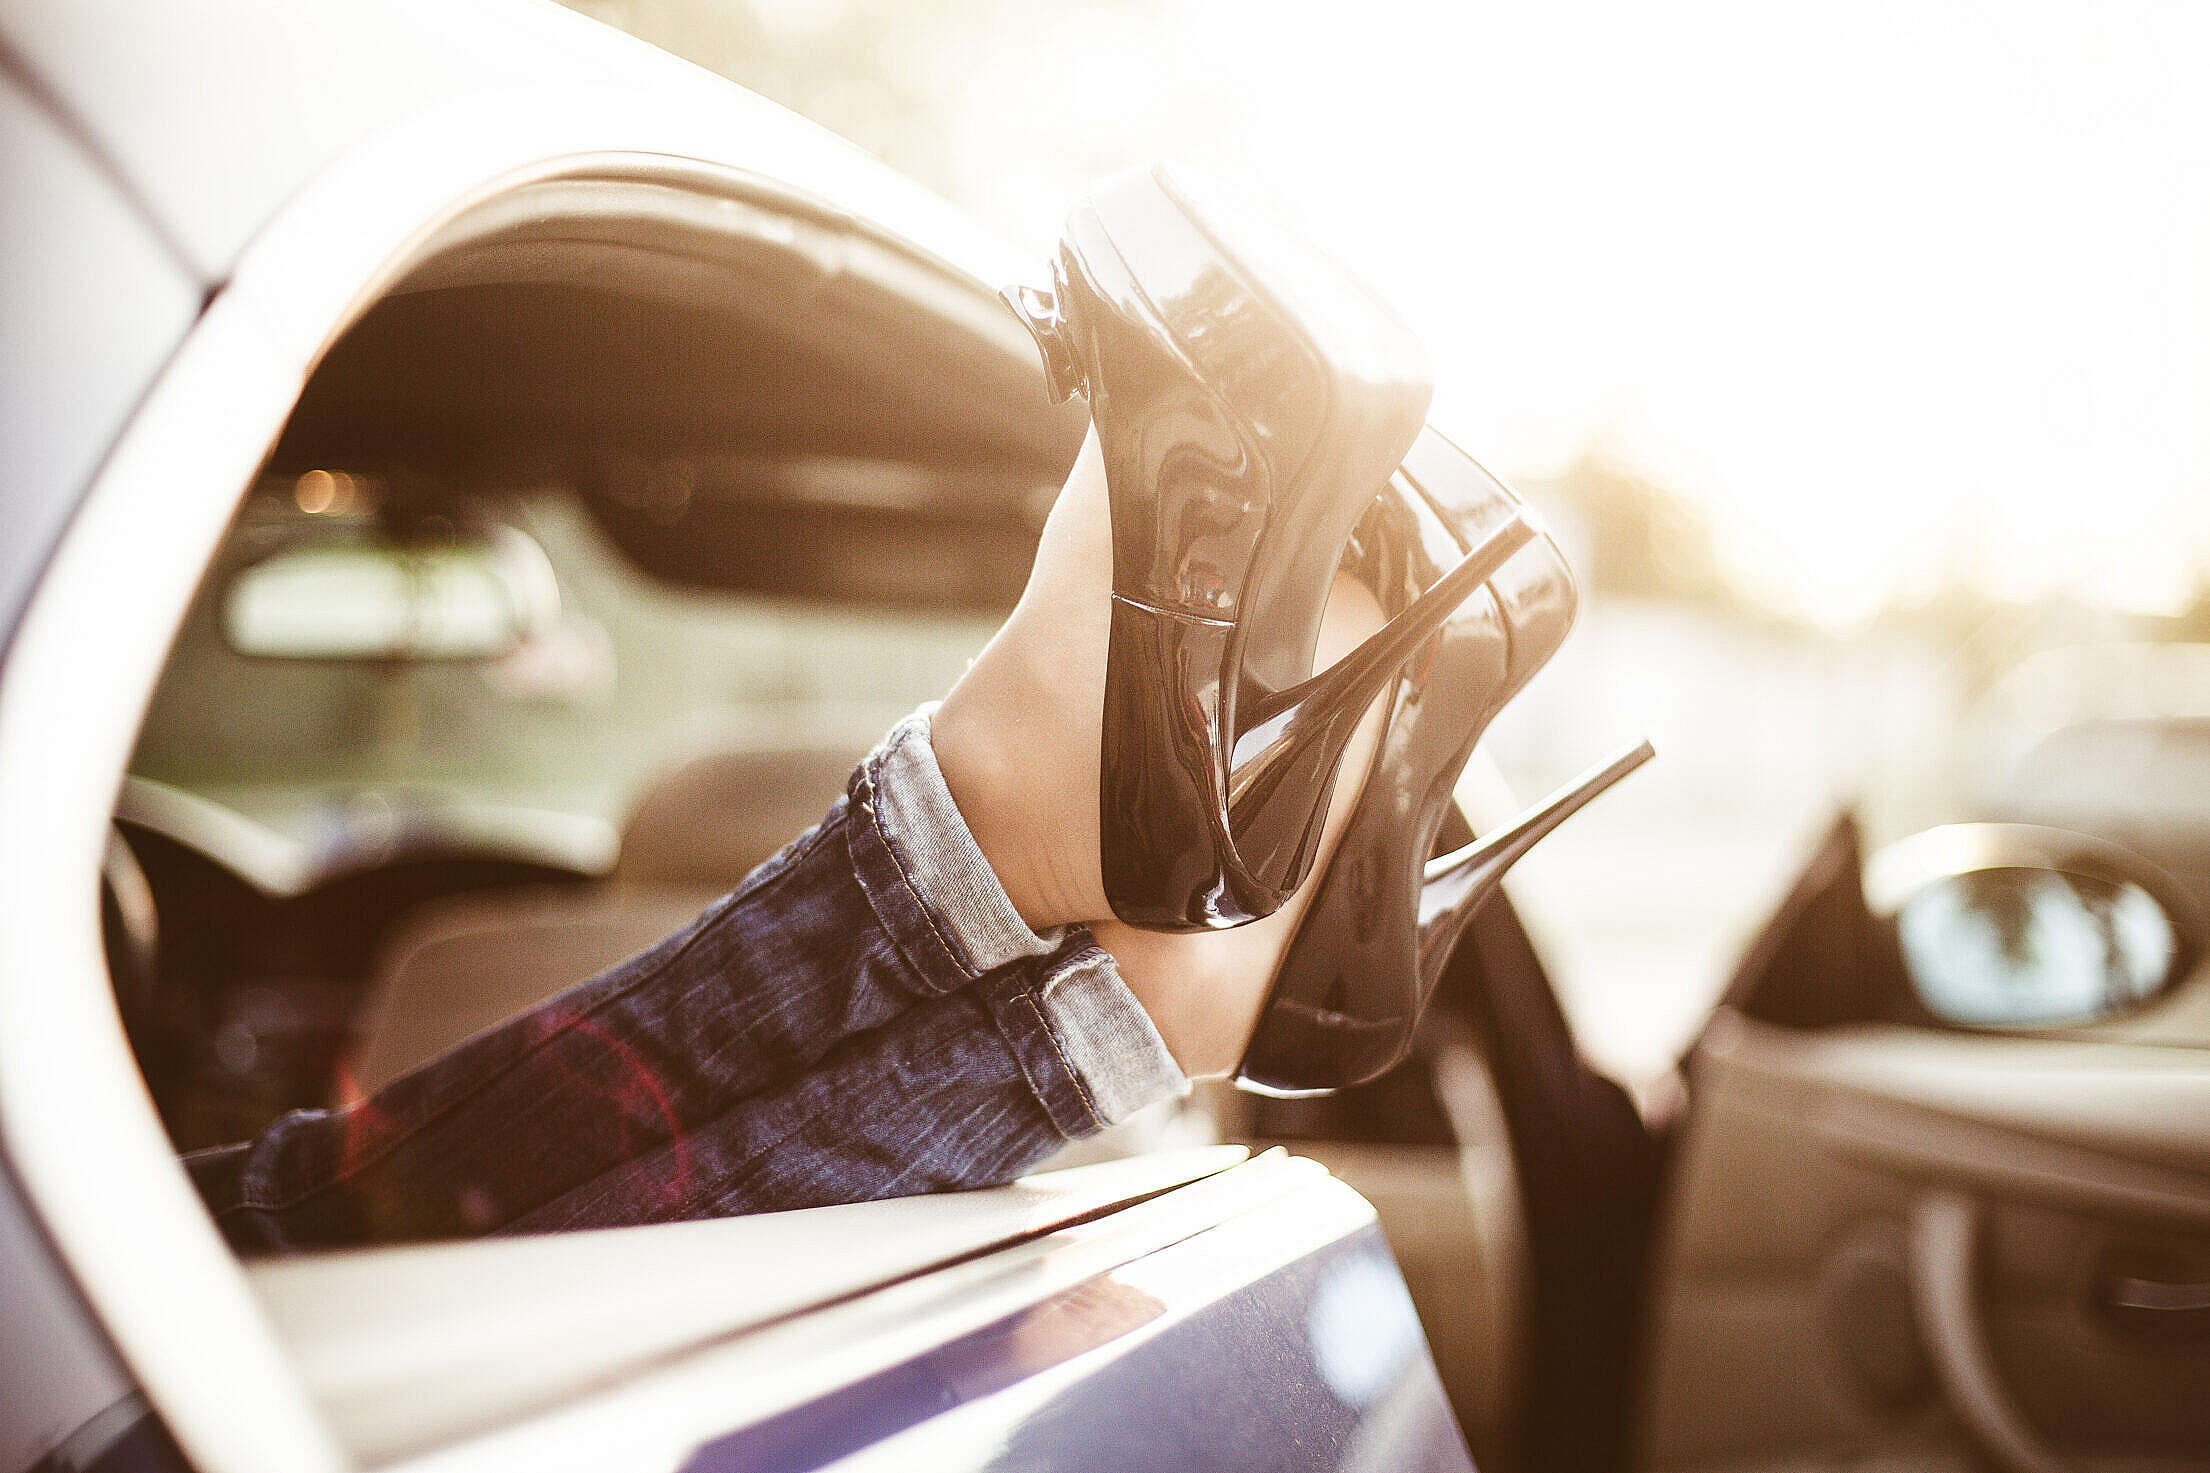 Young Woman With High Heels in Car Transport Limousine Service Free Stock Photo